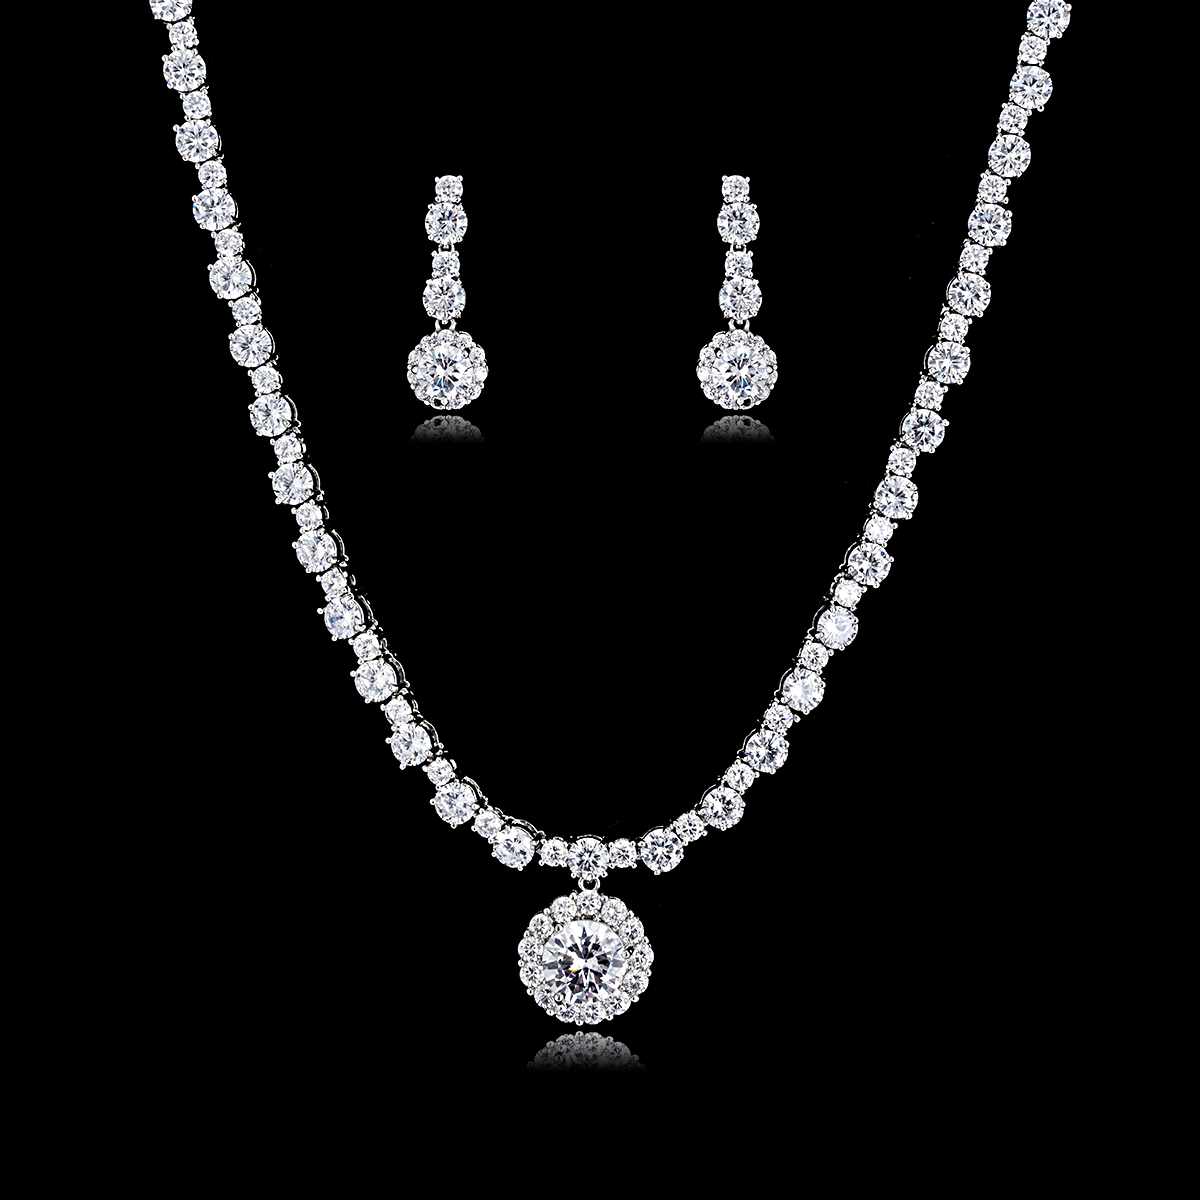 Crystal CZ Cubic Zircon Bridal Wedding Flower Necklace Earring Set Jewelry Sets for Women Prom Party Jewelry Accessories CN10168Crystal CZ Cubic Zircon Bridal Wedding Flower Necklace Earring Set Jewelry Sets for Women Prom Party Jewelry Accessories CN10168